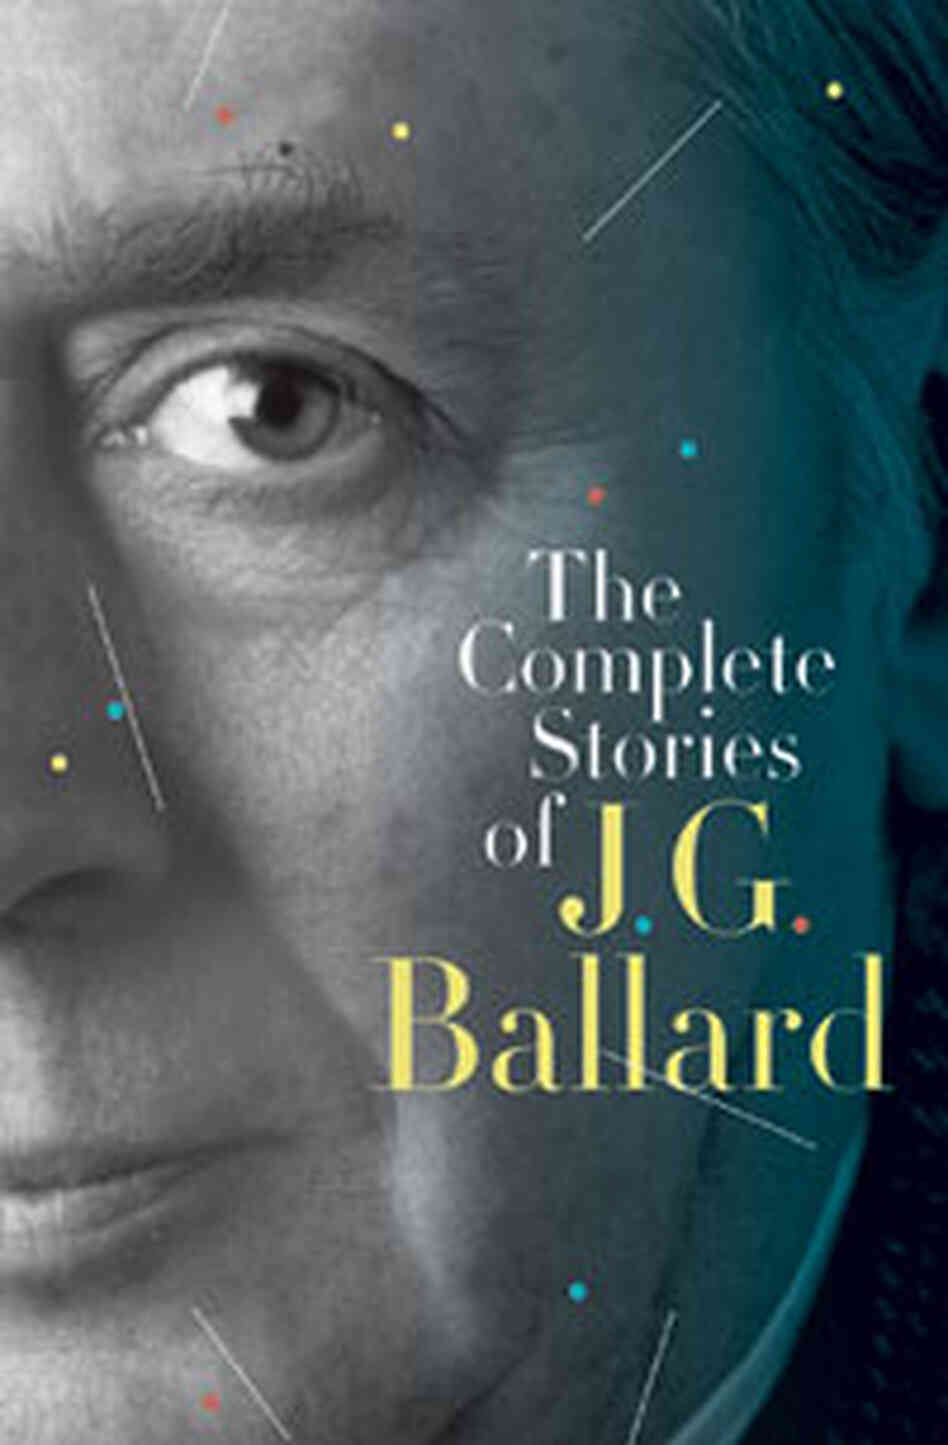 'The Complete Stories of J.G. Ballard'